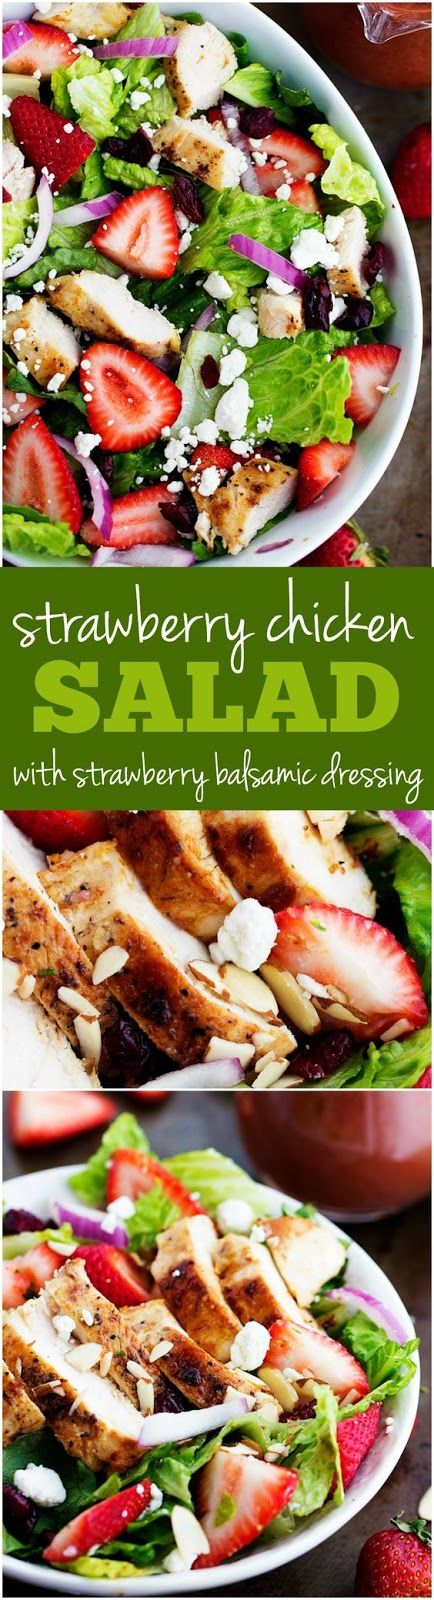 STRAWBERRY CHICKEN SALAD WITH STRAWBERRY BALSAMIC DRESSING | Food And Cake Recipes